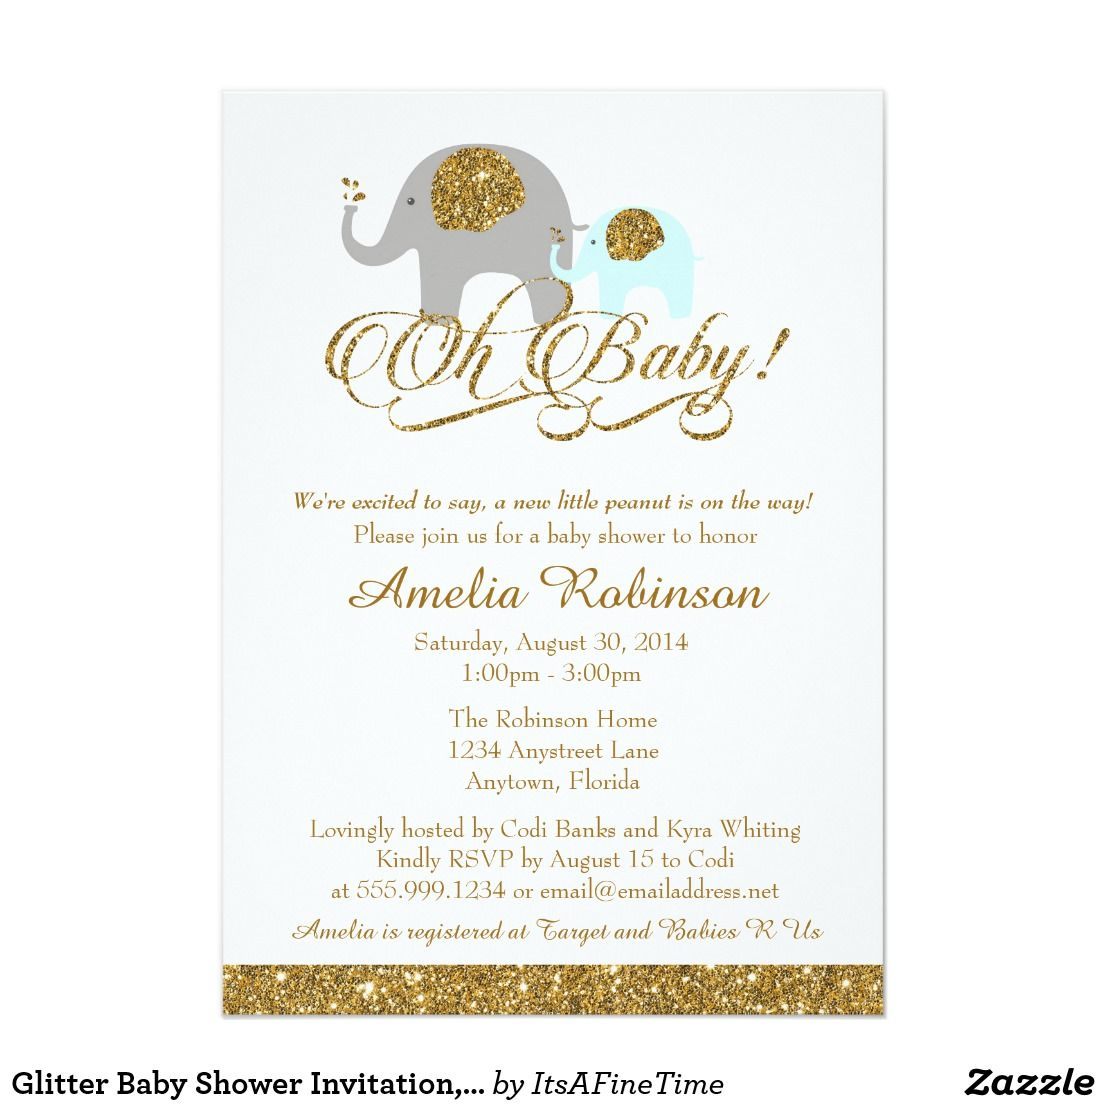 Glitter Baby Shower Invitation, Elephant Peanut Card Lovely shower ...